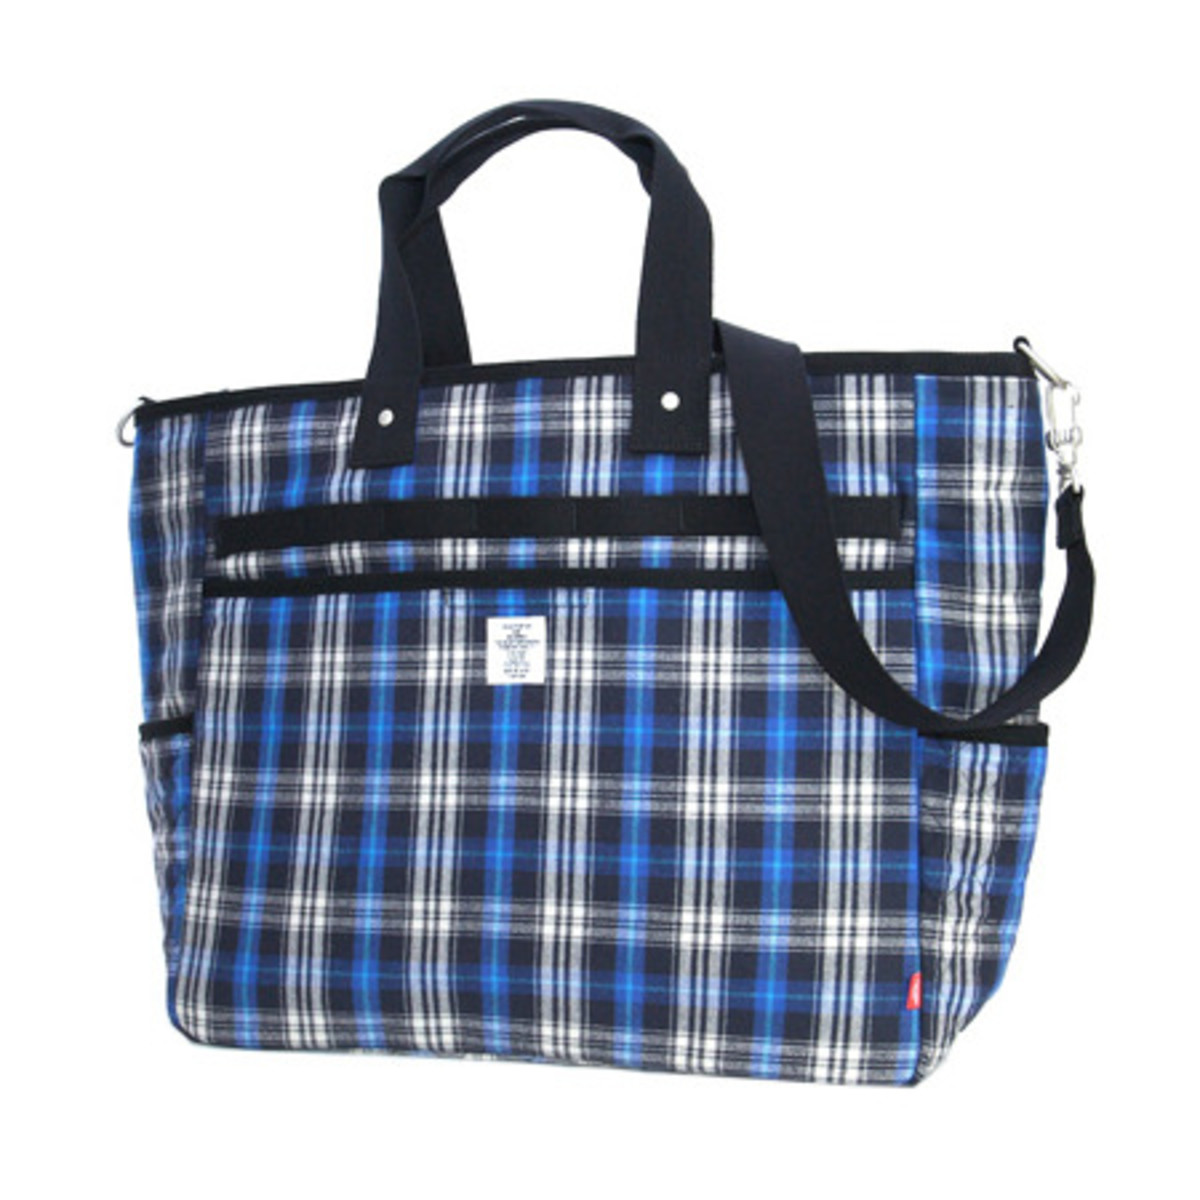 tote-bag-blue